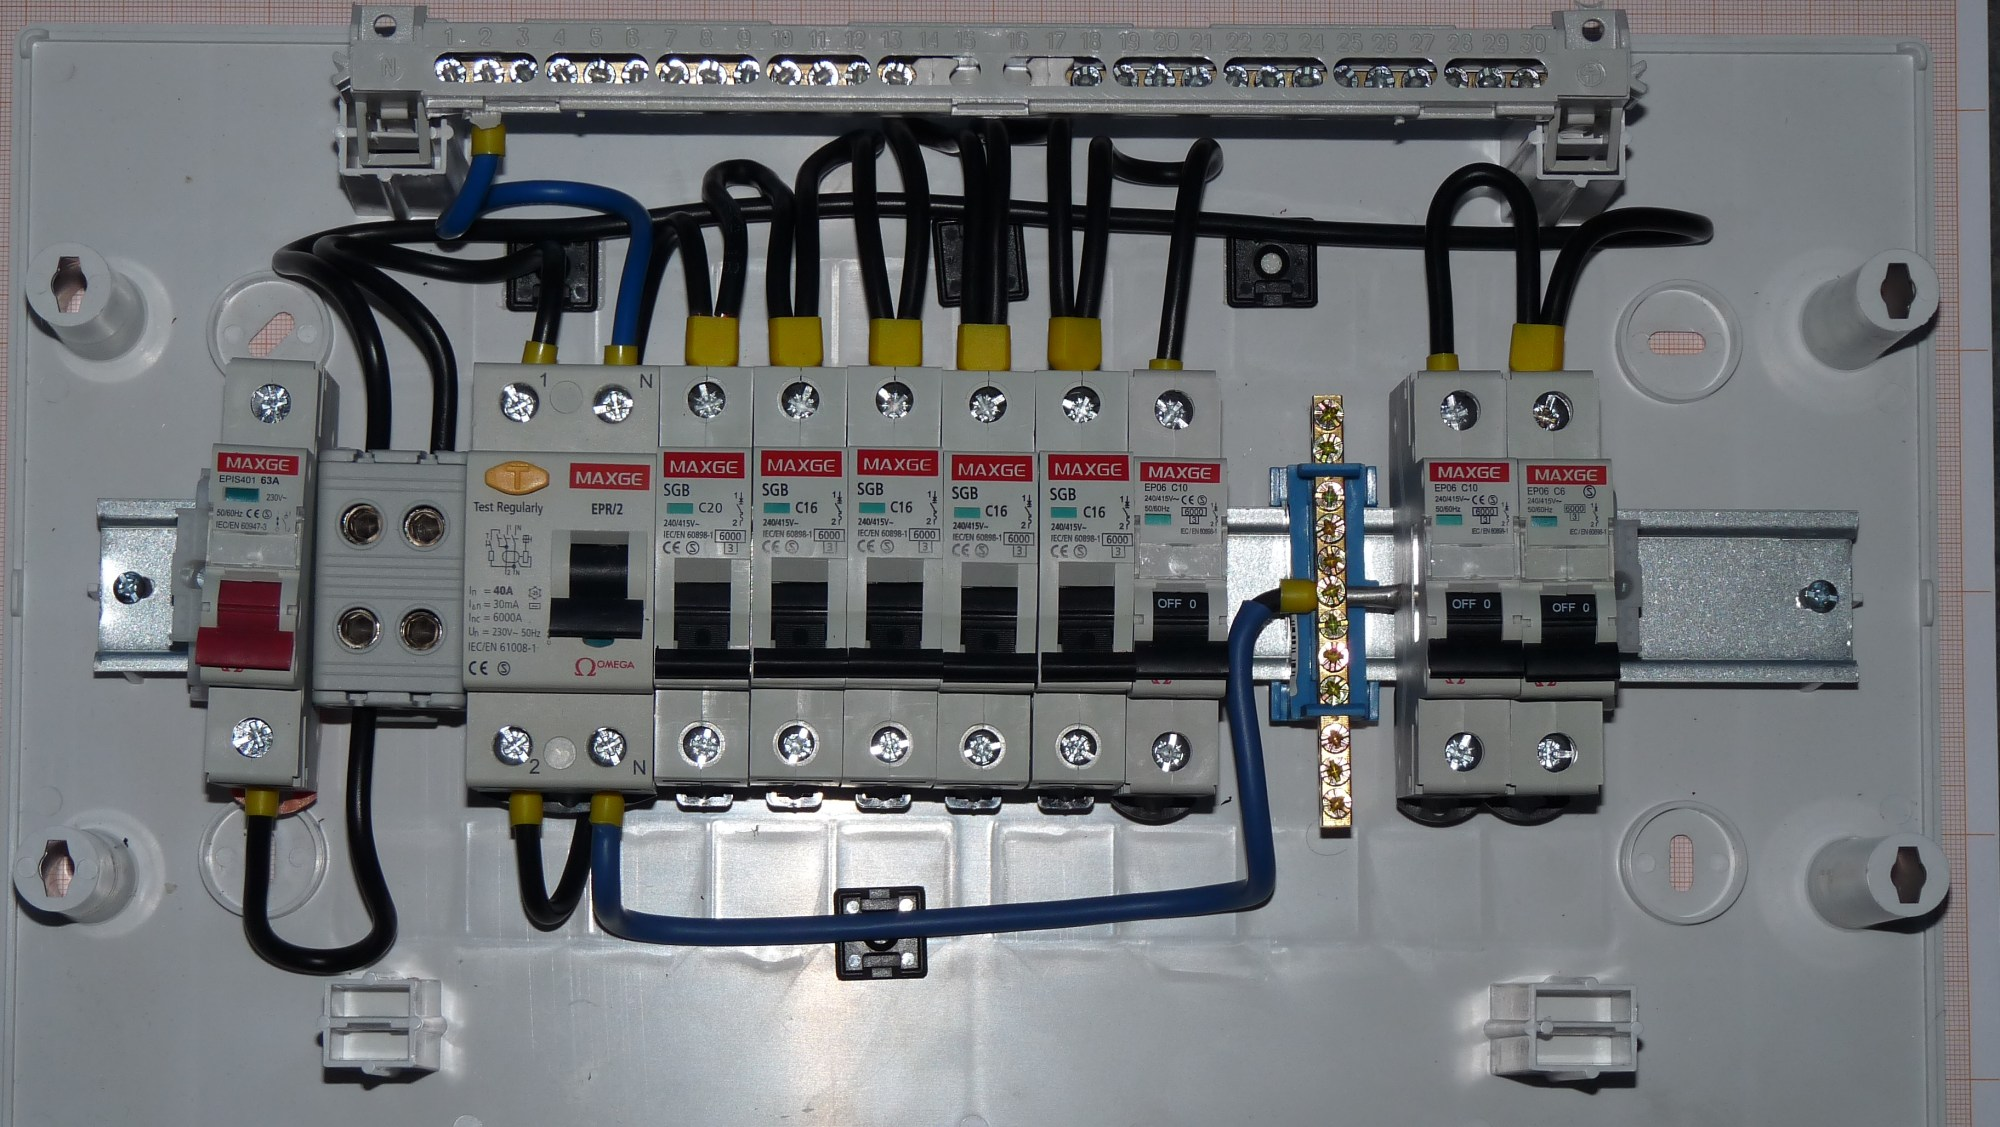 hight resolution of file mera 12 fuse box for apartment jpg